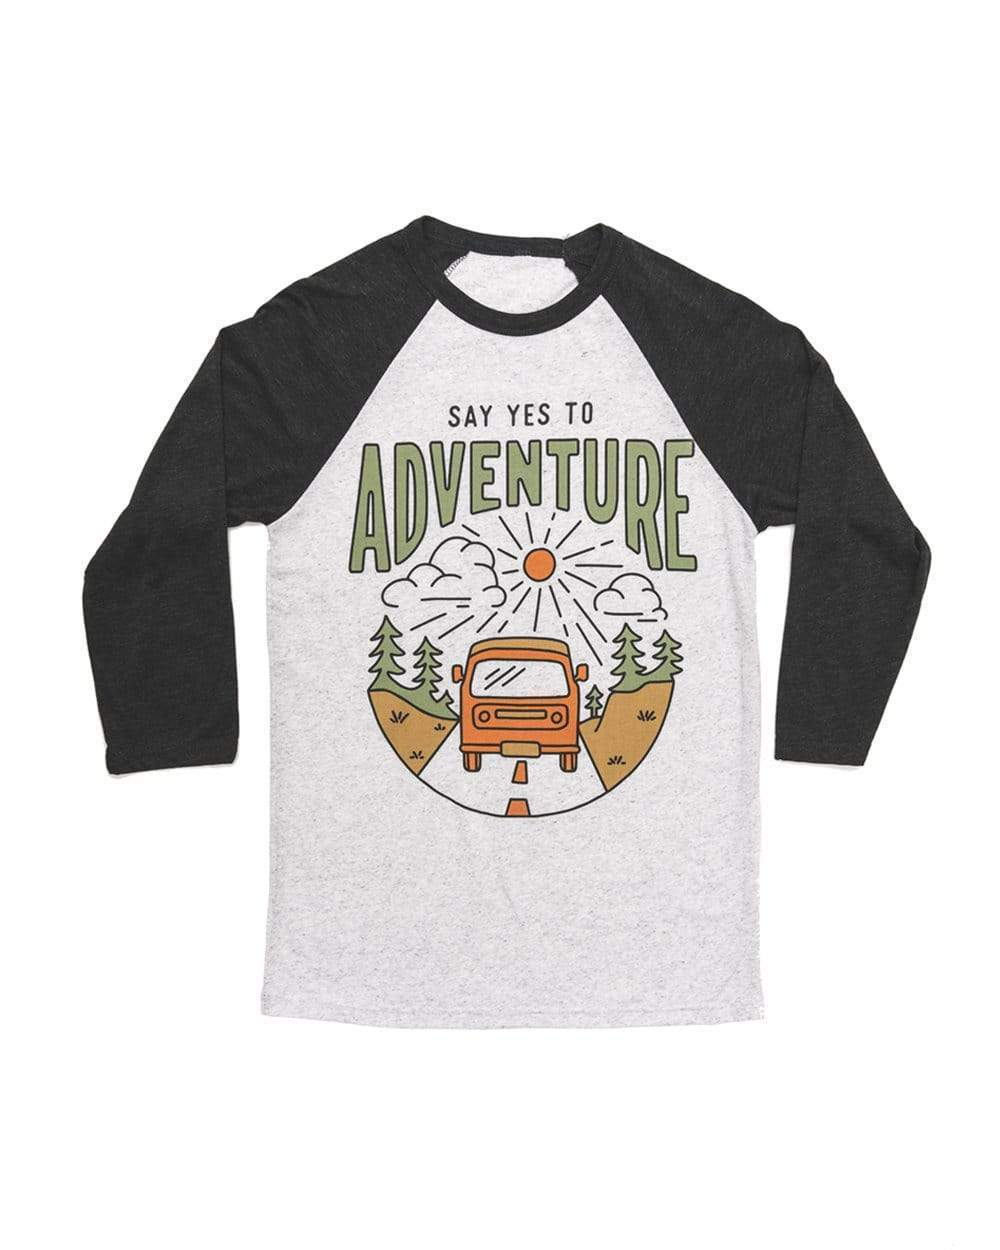 Yes To Adventure 3/4 Tee